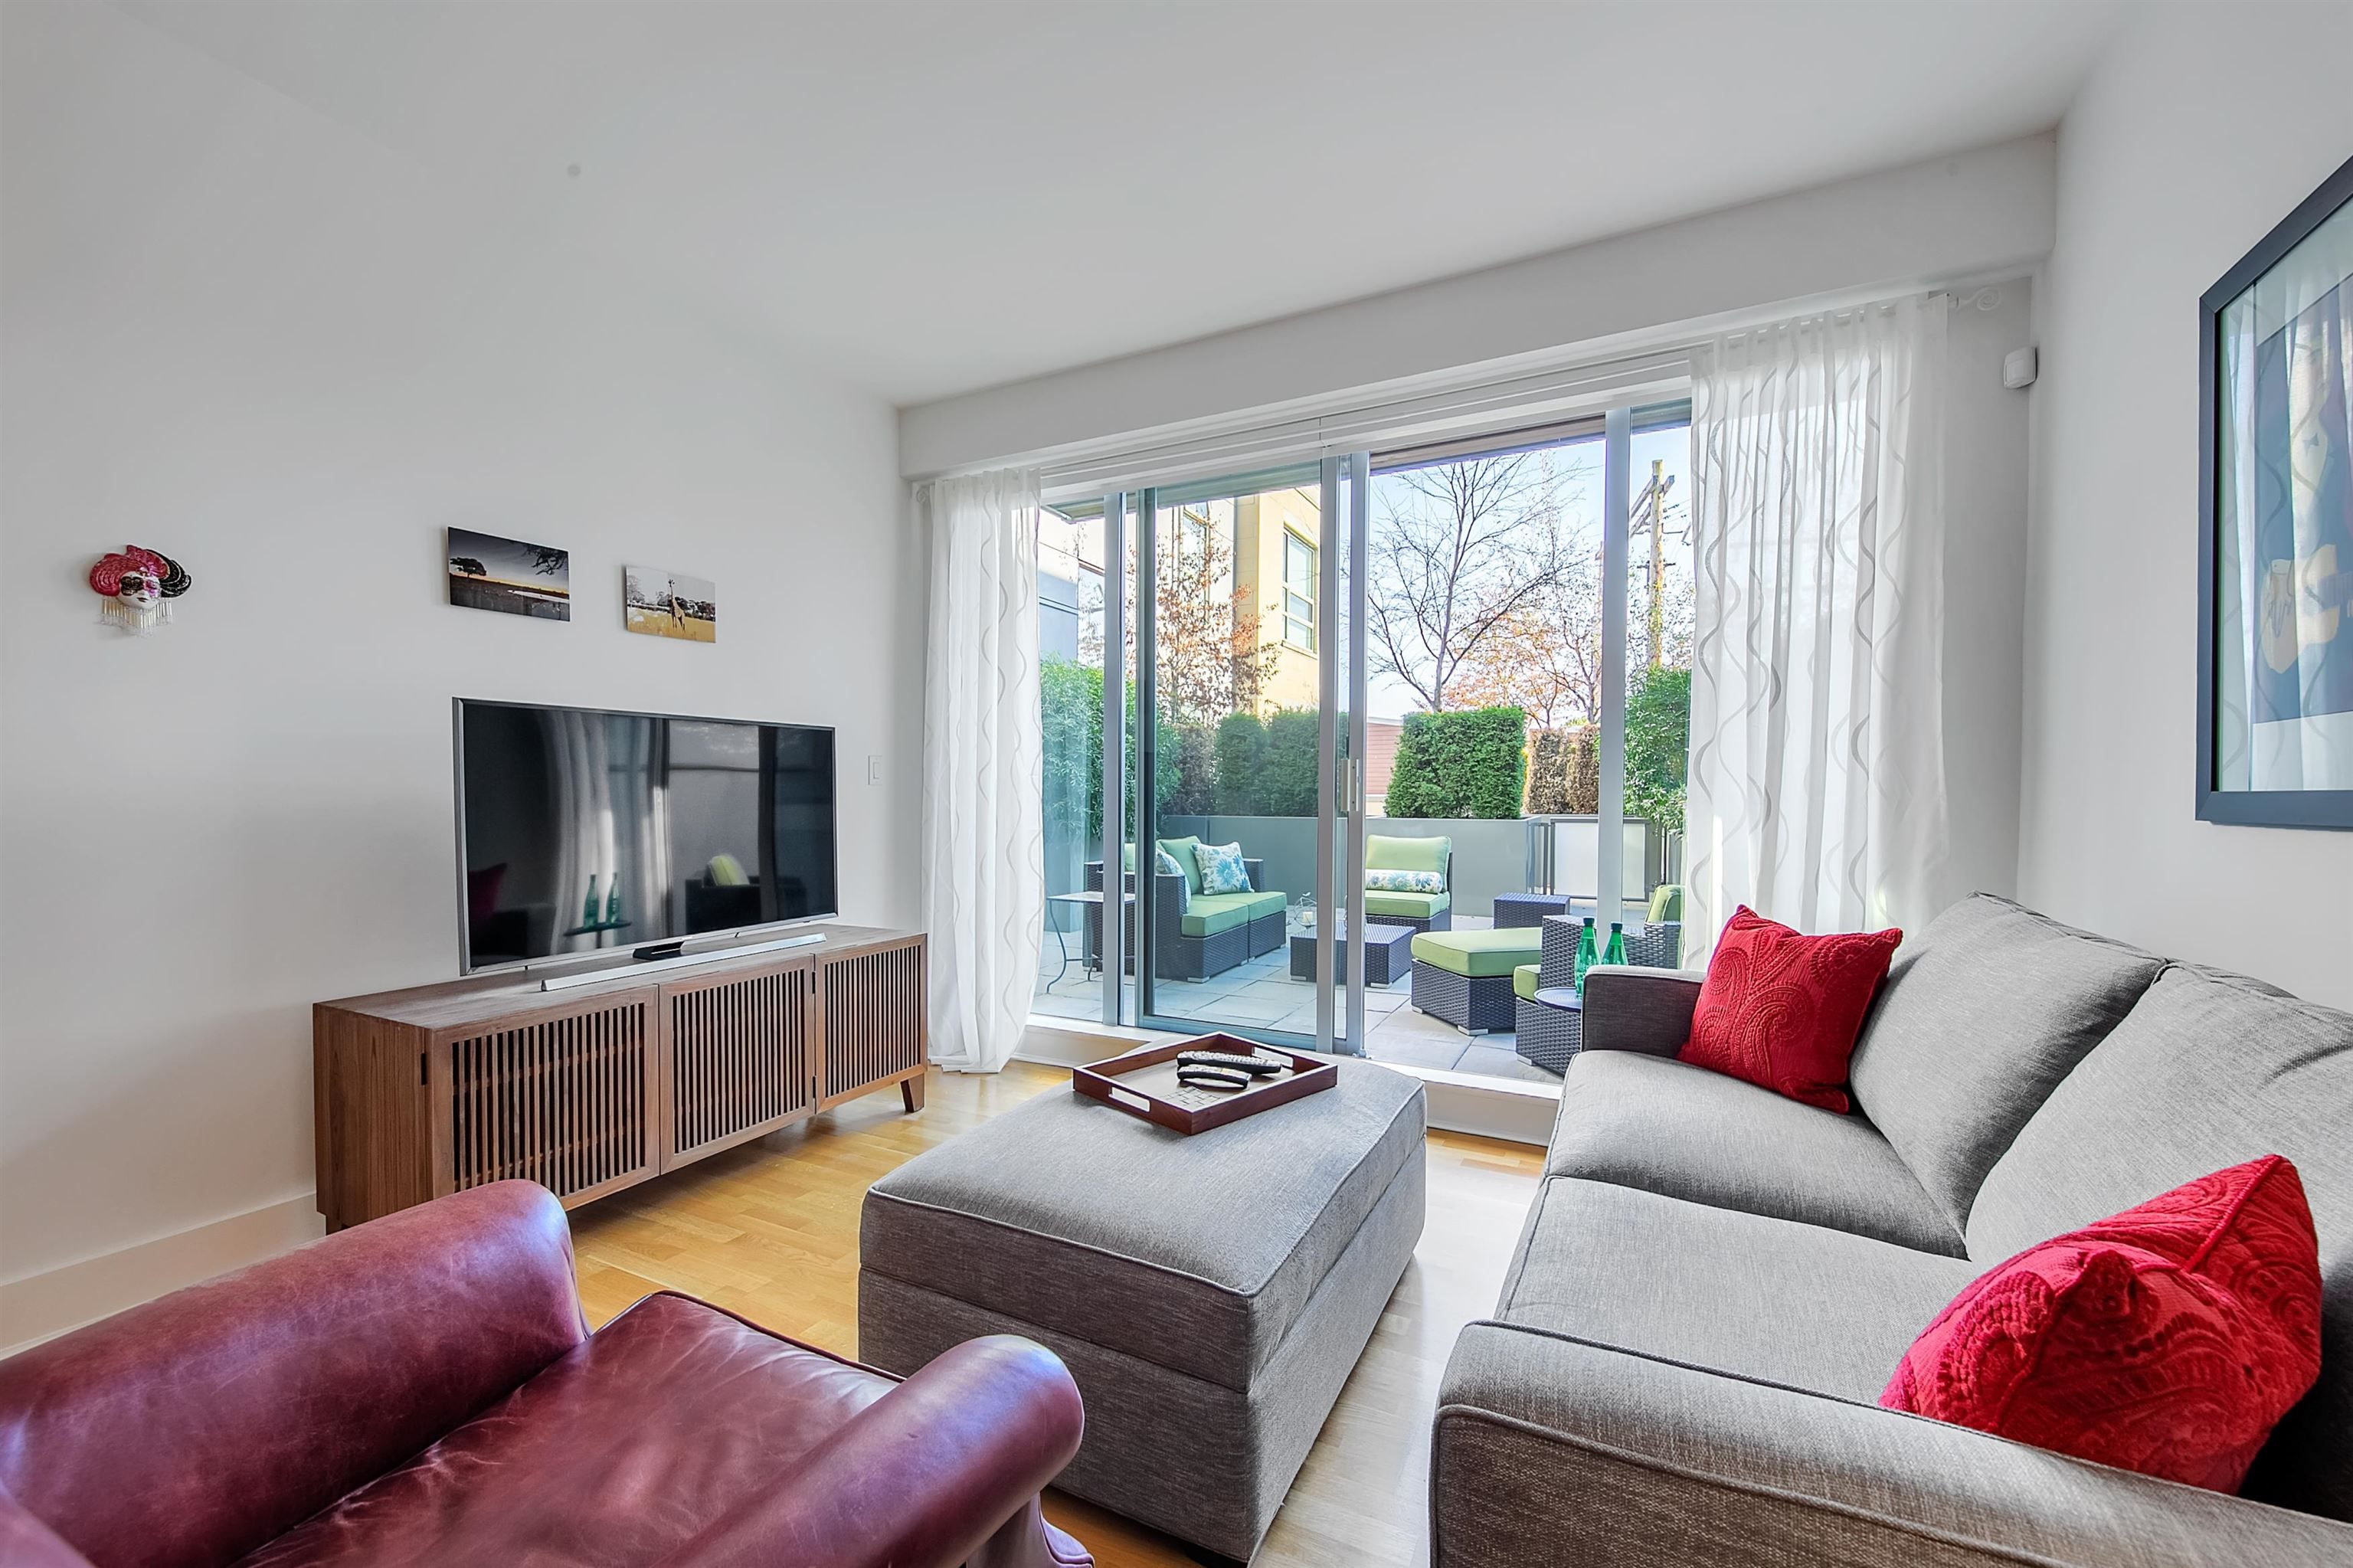 """Main Photo: 212 2128 W 40TH Avenue in Vancouver: Kerrisdale Condo for sale in """"Kerrisdale Gardens"""" (Vancouver West)  : MLS®# R2616322"""